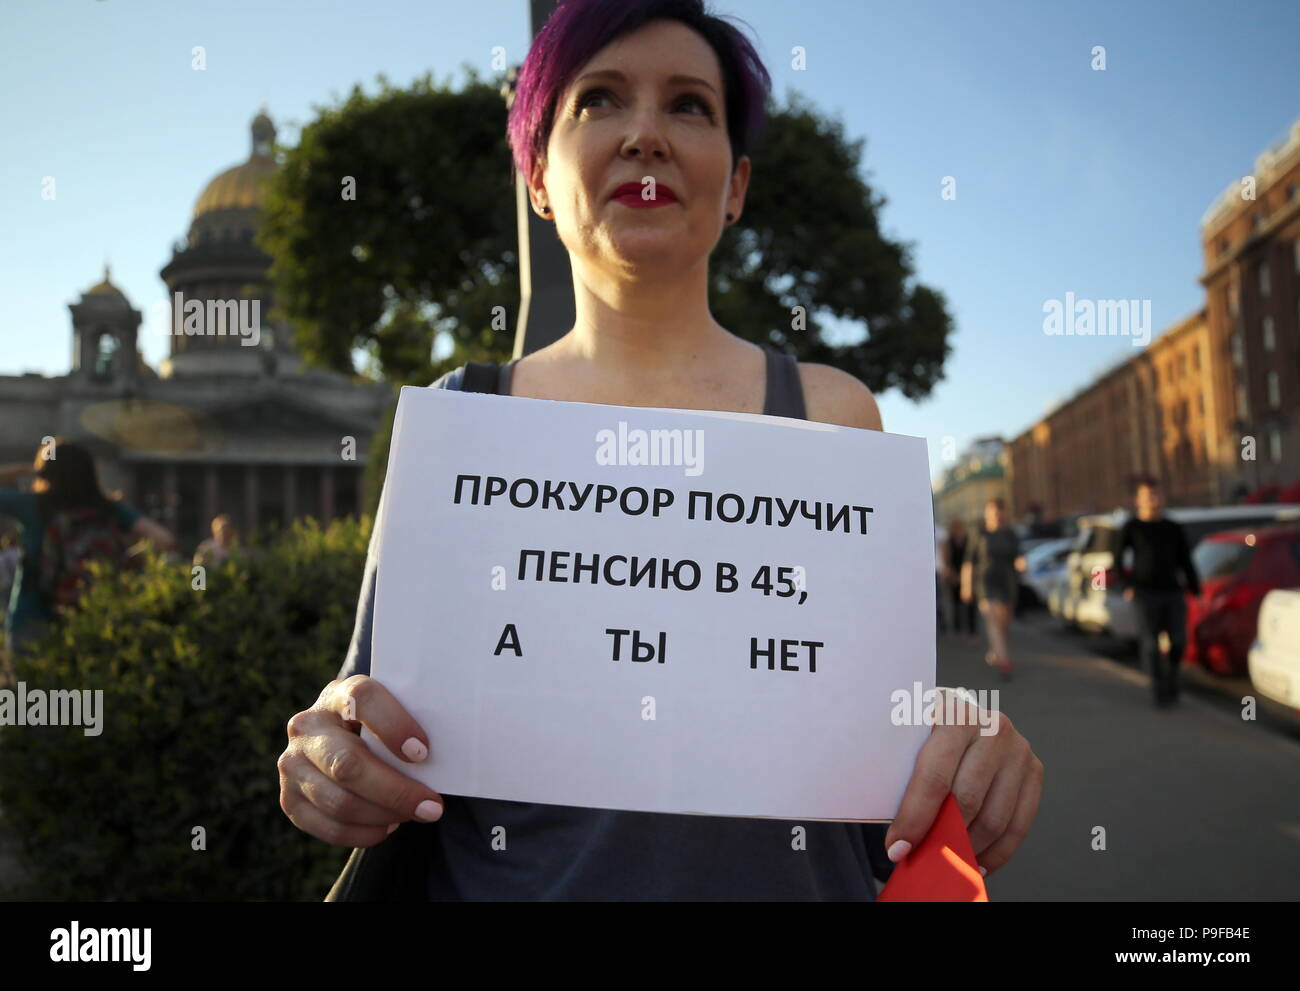 St Petersburg, Russia. 18th July, 2018. ST PETERSBURG, RUSSIA - JULY 18, 2018: A woman takes part in an unauthorized St Petersburg rally against a Russian government proposal to raise the retirement age from 60 to 65 for men, and from 55 to 63 for women within the next two decades. Peter Kovalev/TASS Credit: ITAR-TASS News Agency/Alamy Live News - Stock Image